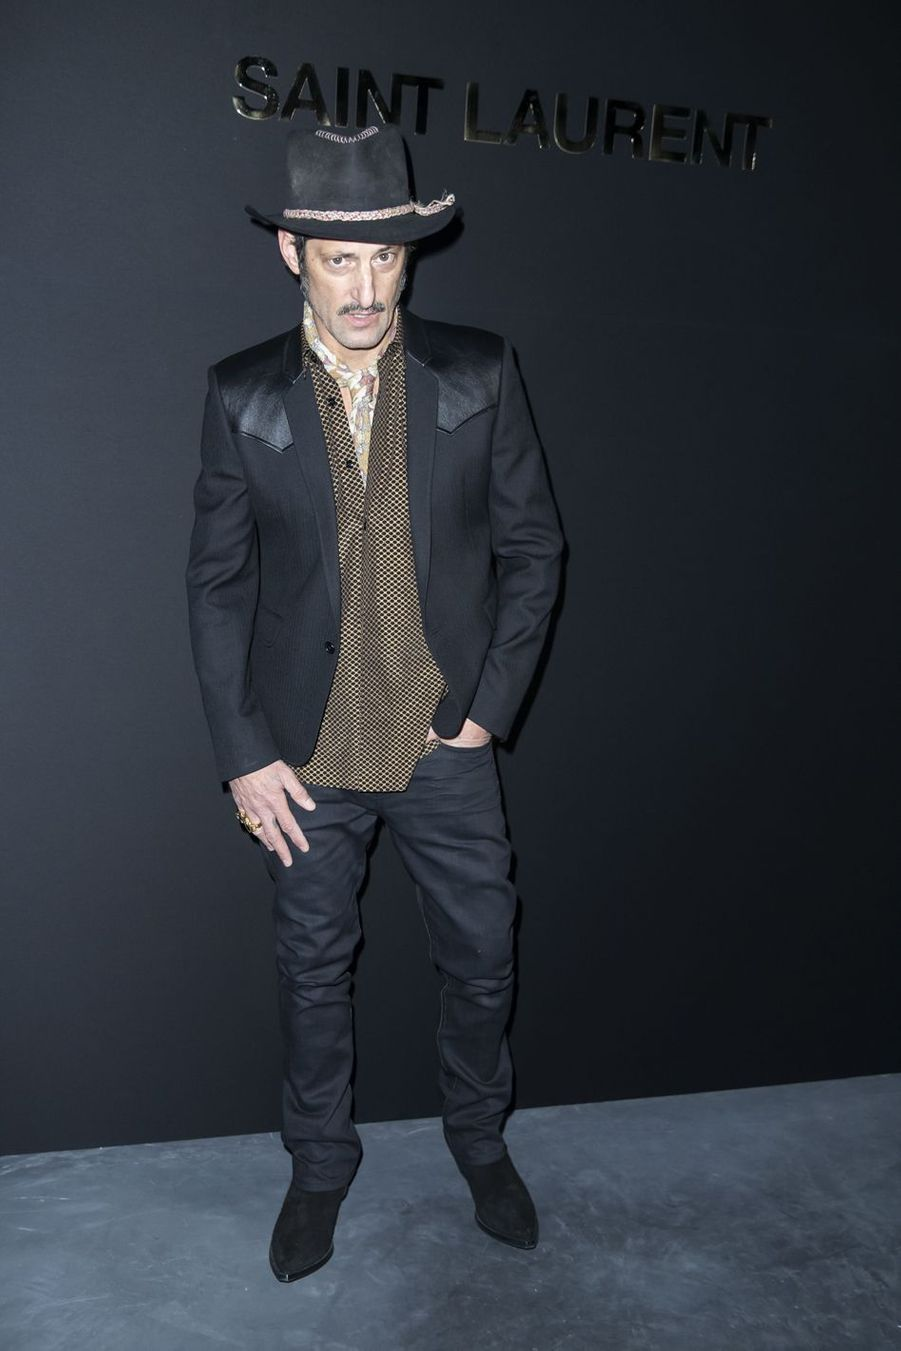 Vincent Gallo au défilé Saint Laurent lors de la Fashion Week de Paris le 26 février 2019